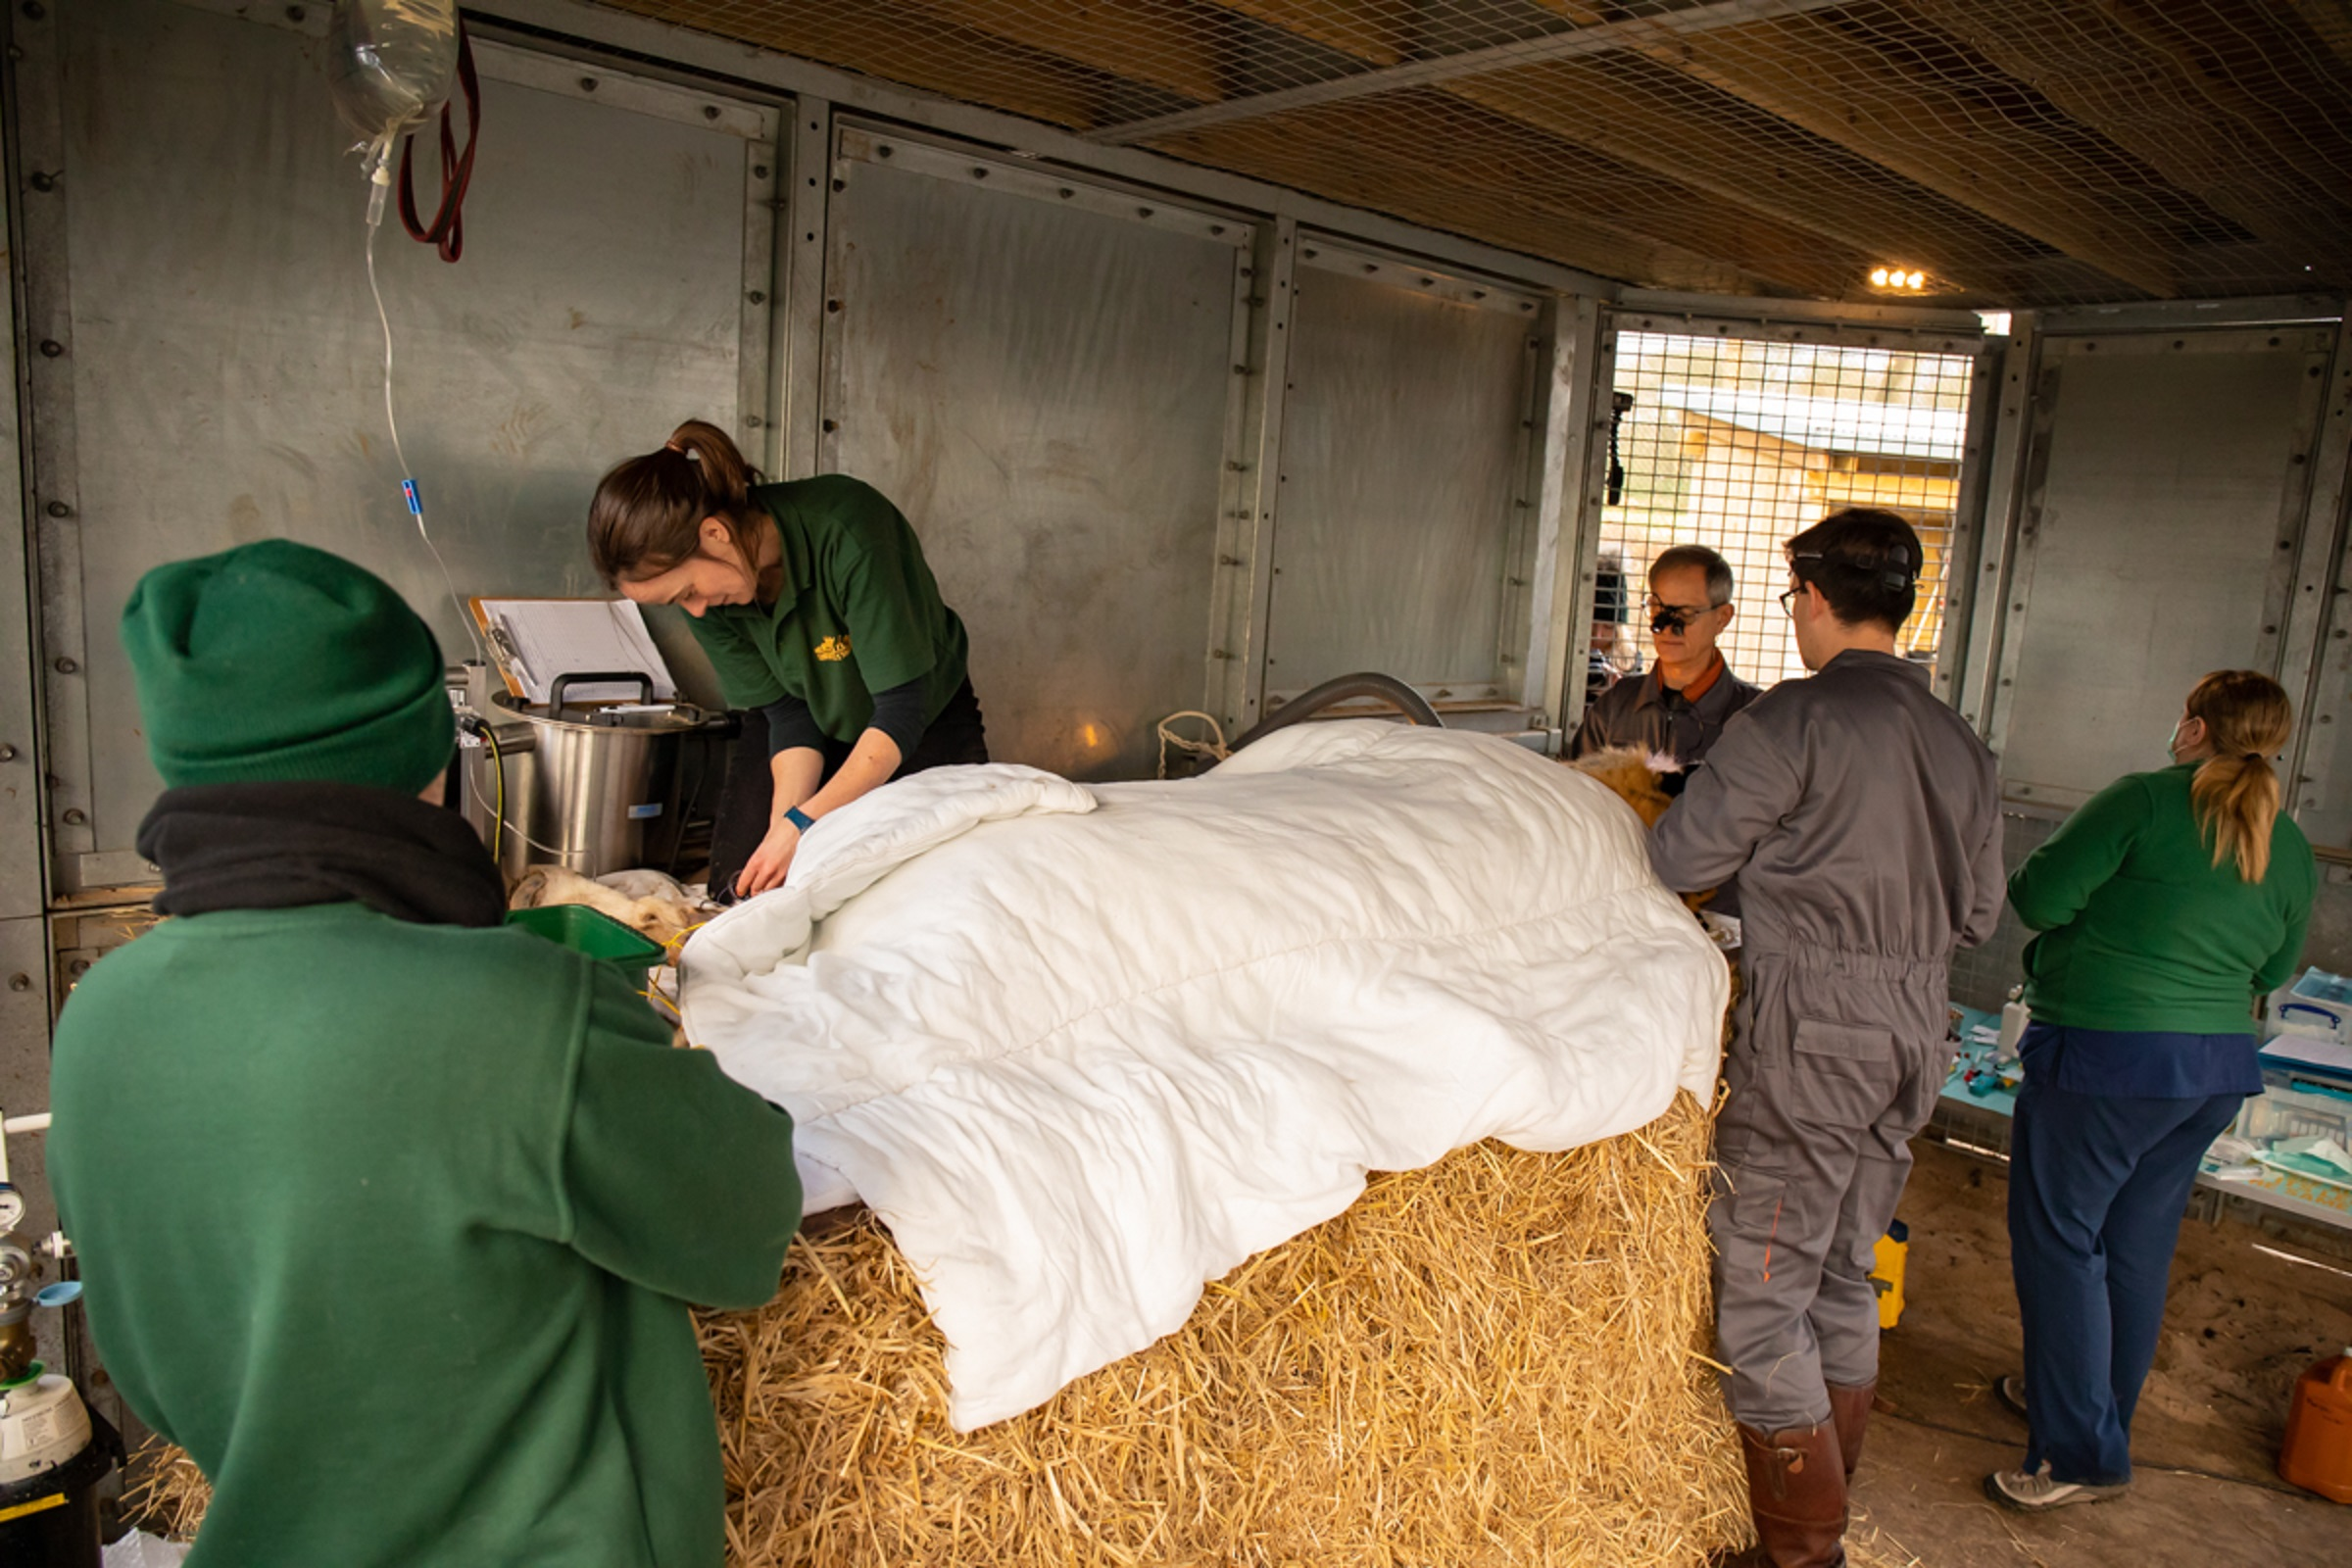 Kuzma the tiger receives dental treatment at Knowsley Safari